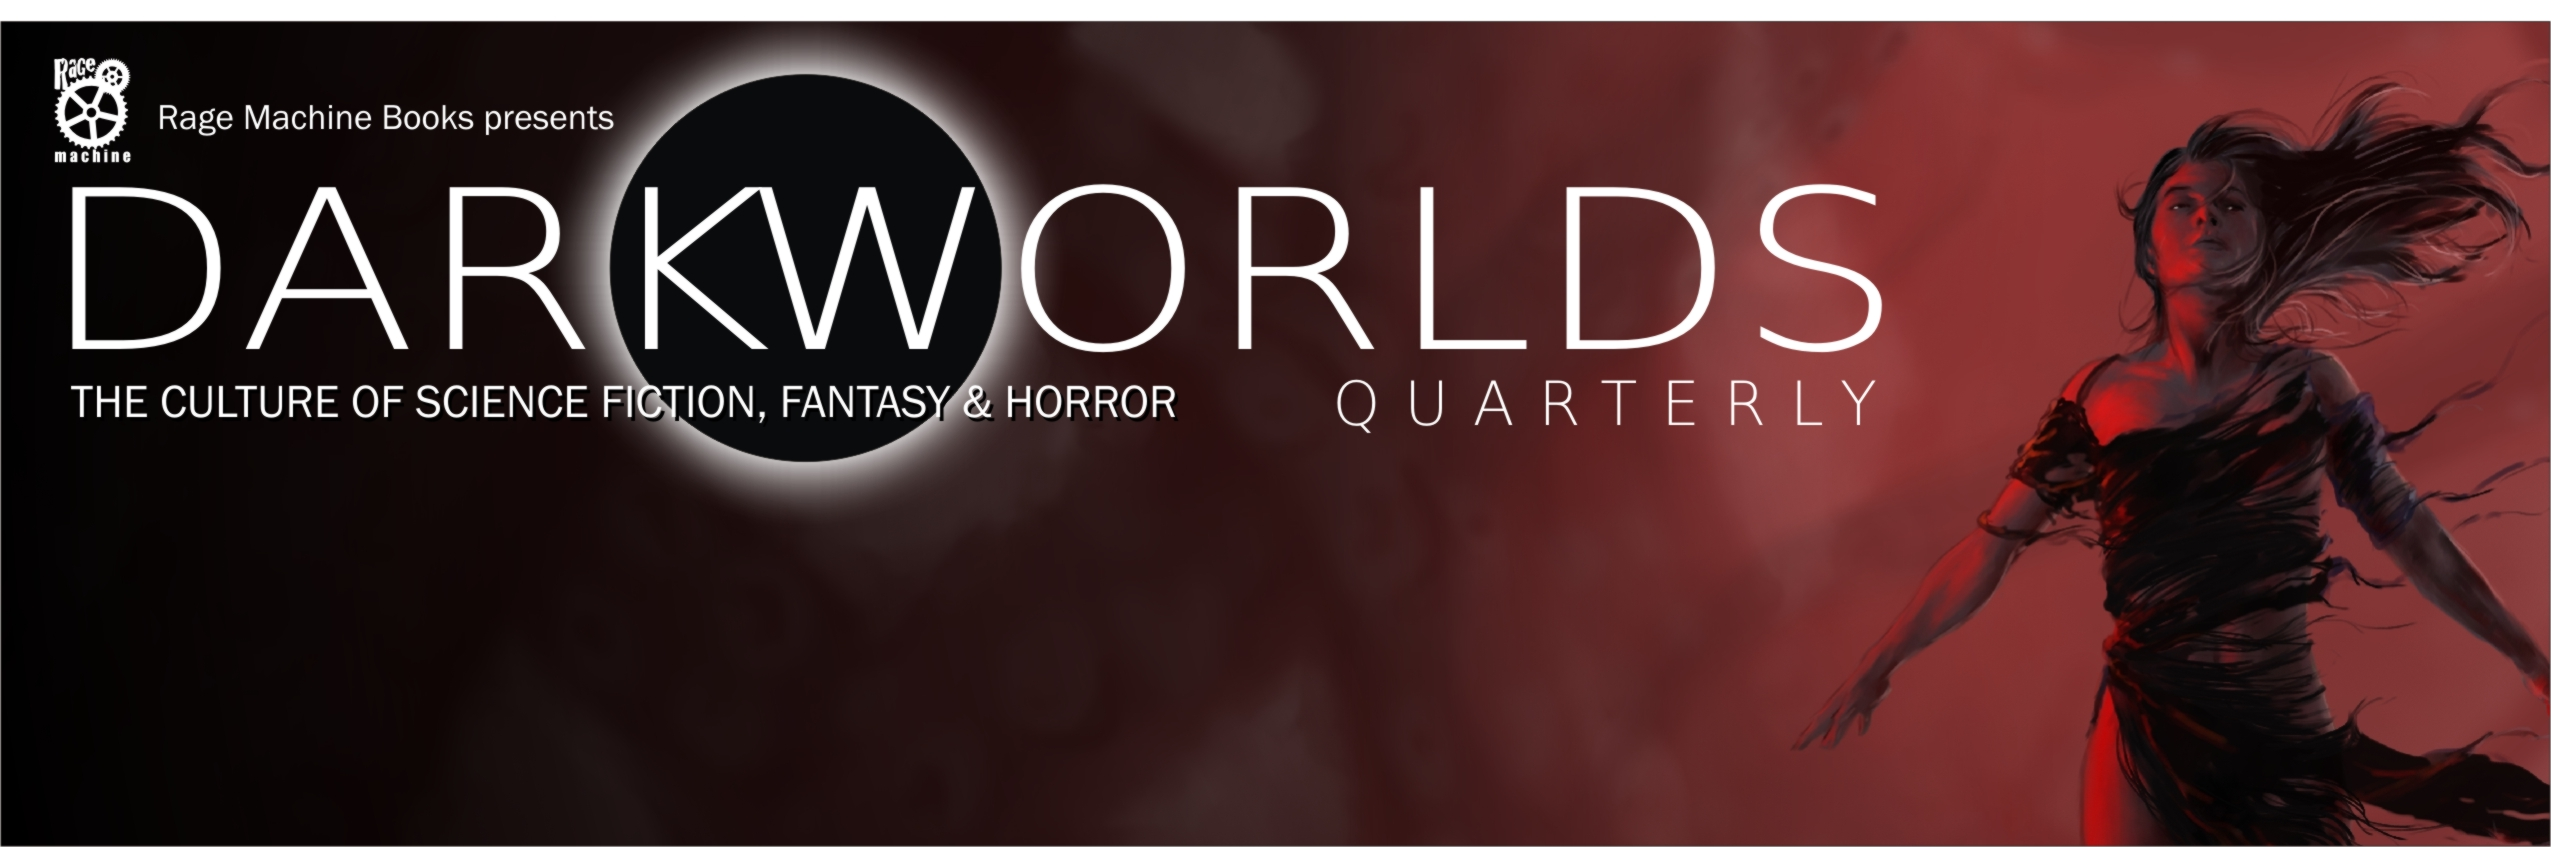 Dark Worlds Quarterly Website Banner 2